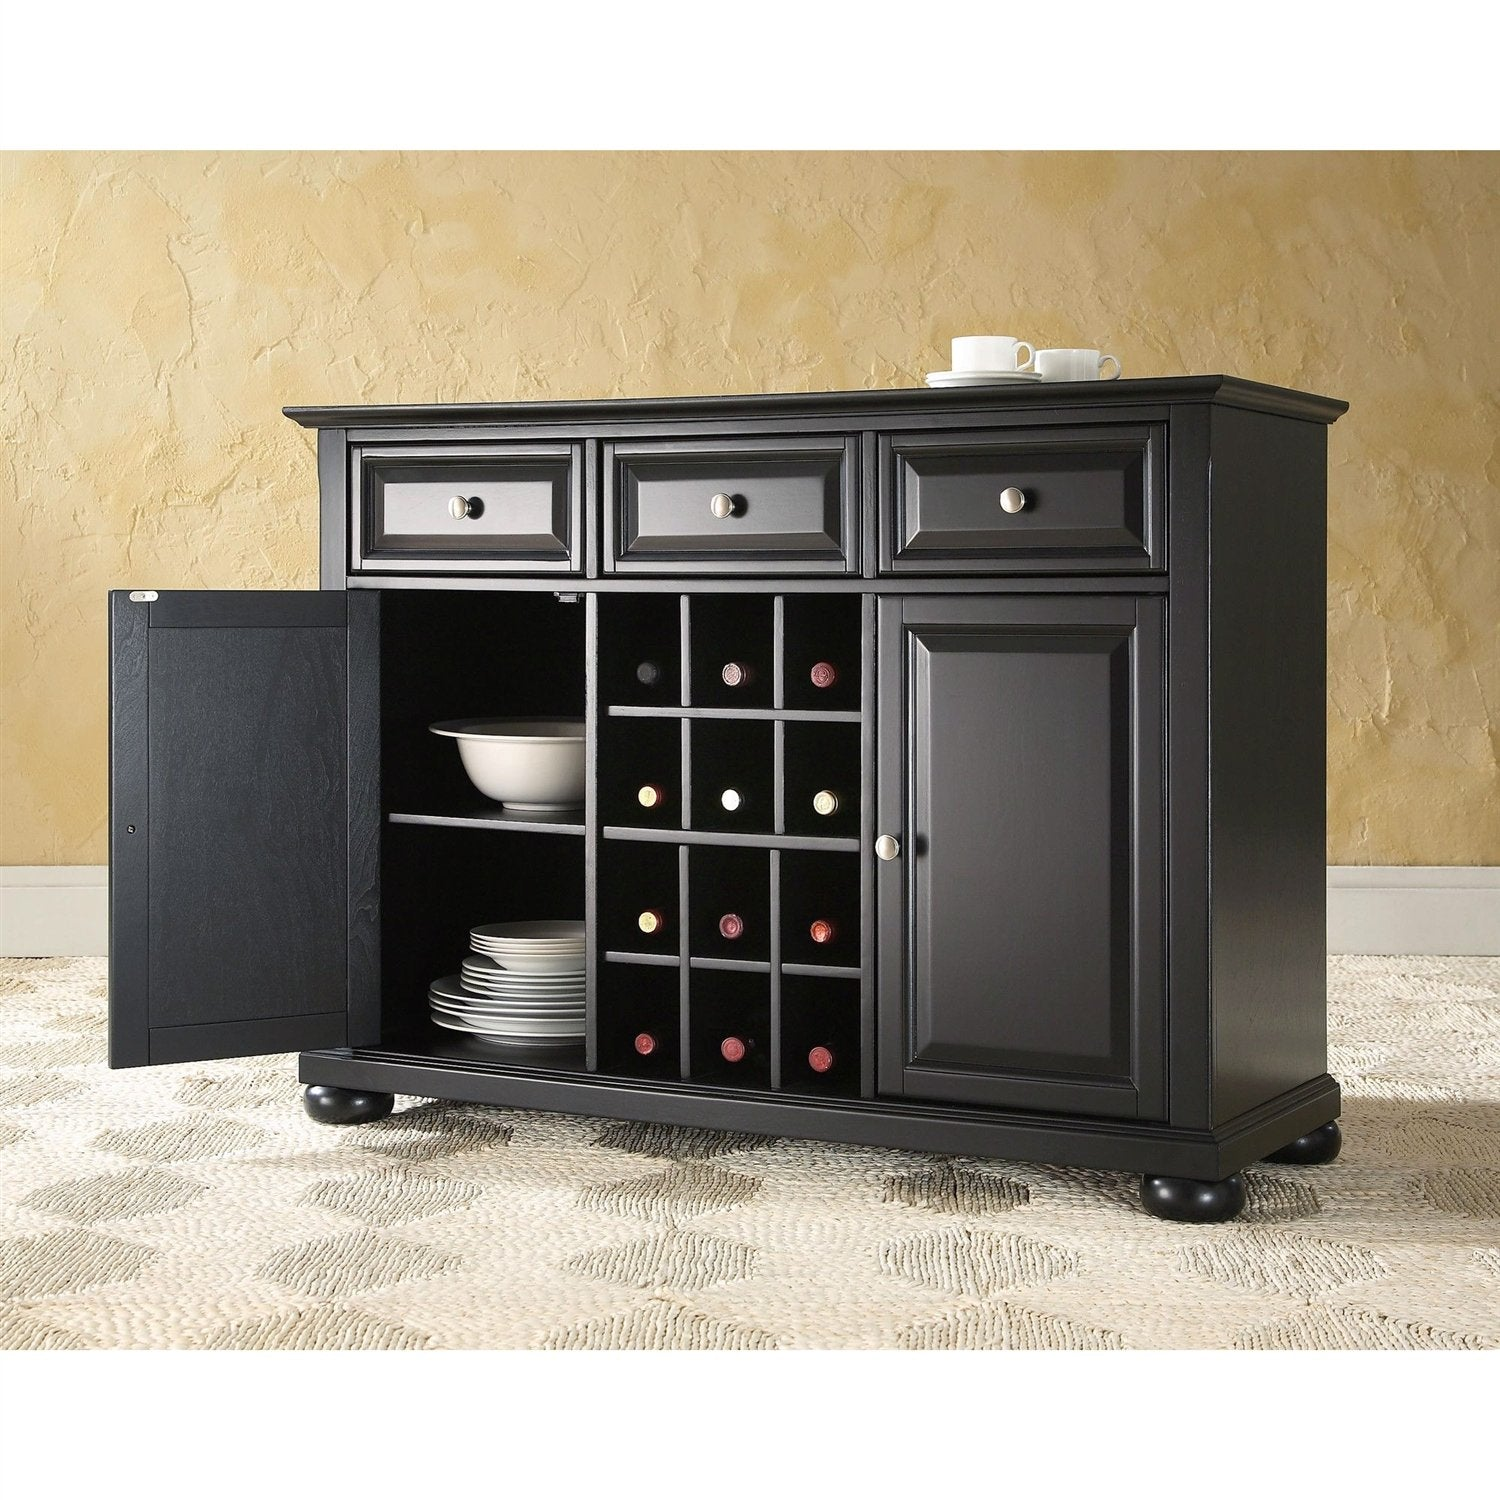 Black Dining Room Buffet Sideboard Cabinet With Wine Storage